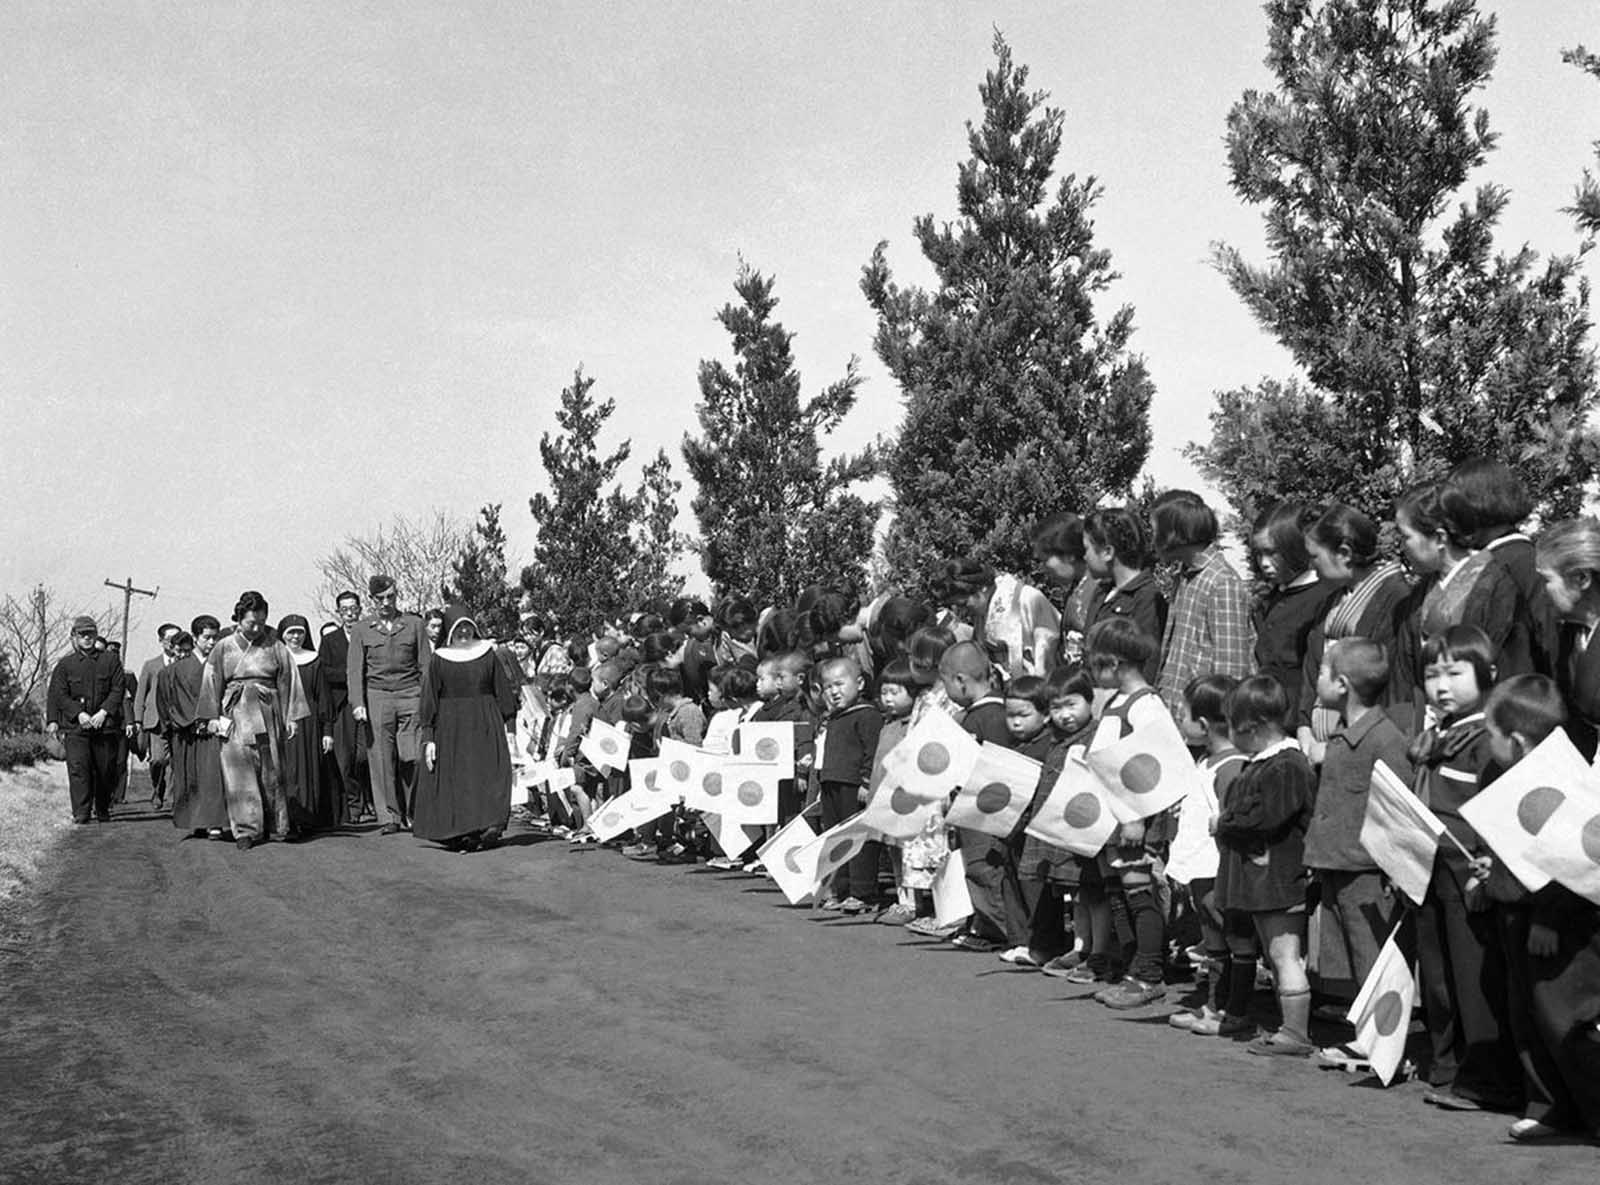 The Empress of Japan visits a Catholic Orphanage staffed by Japanese Nuns for children who have lost their parents in the war and air raids over Tokyo. The Empress inspected the grounds and paid a visit to the chapel. Children wave Japanese flags to greet the Empress during her visit in Fujisawa in Tokyo, on April 13, 1946.